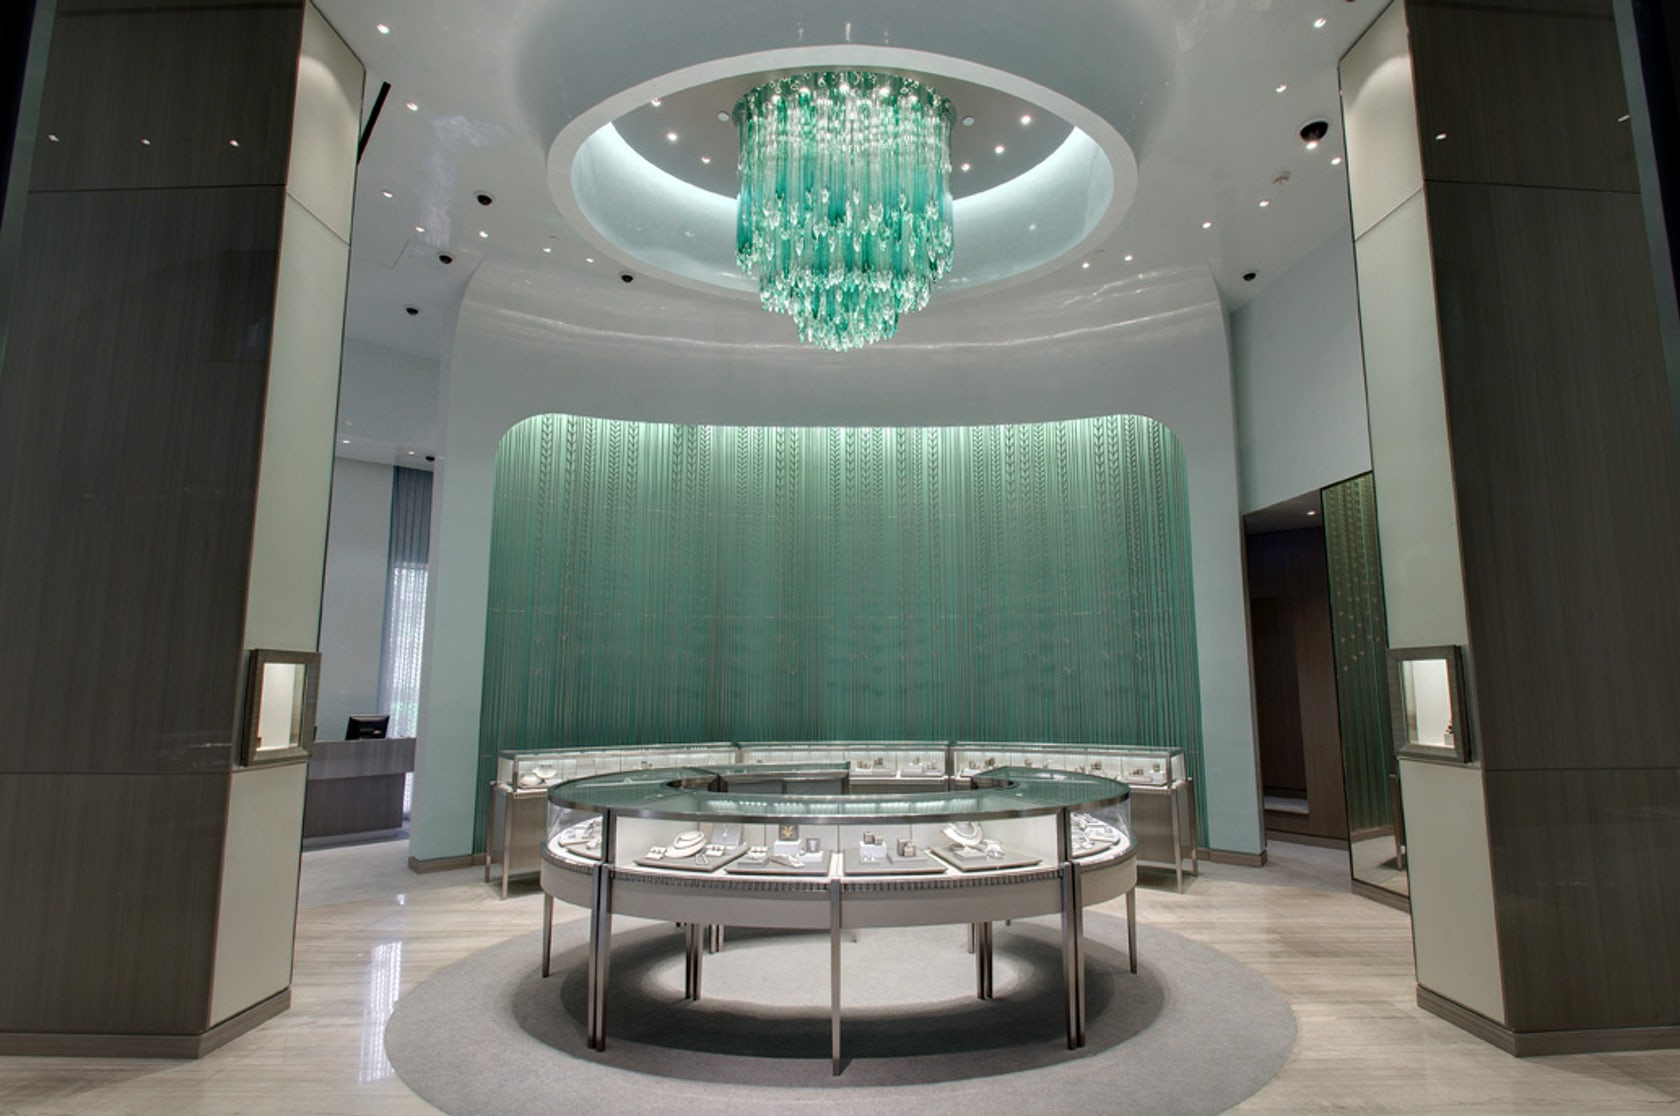 Grade architecture interior design architizer for High design jewelry nyc